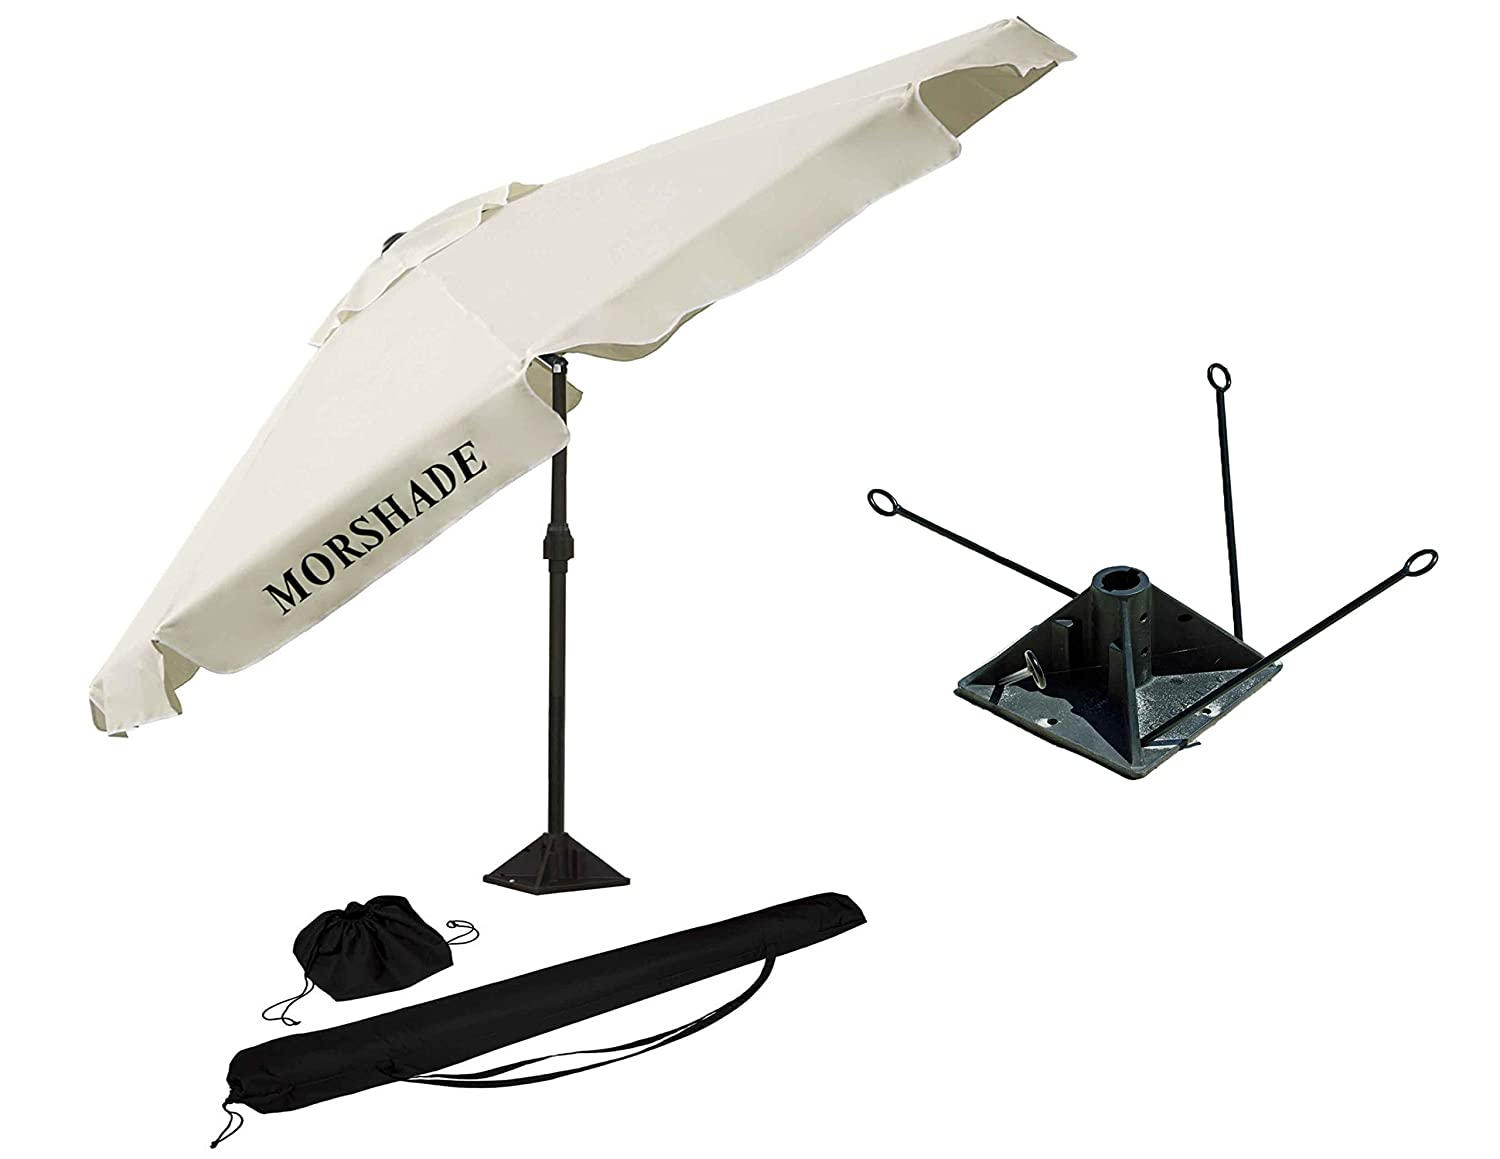 562f8796905a4 MORSHADE 180 Beach and Sport Portable Umbrella with Sand Anchor - 9 Ft